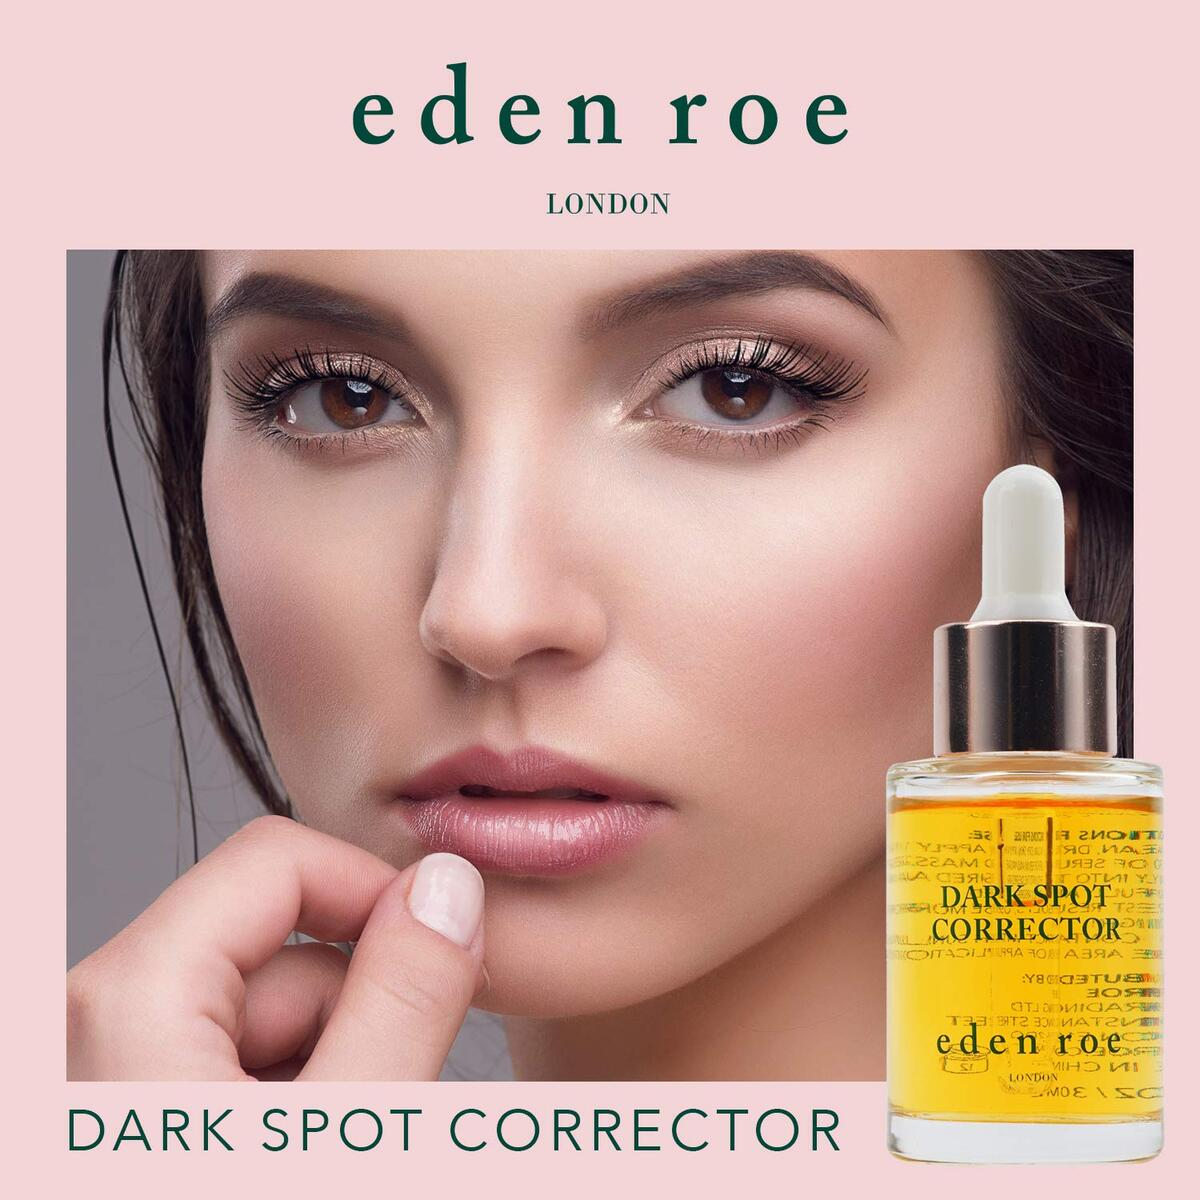 Eden Roe Dark Spot Corrector, Pigment Lightening Serum, With Super White 377 Enhanced Skin Resurfacing and Brightening, for Face Arm Body Bikini Area, Effective Moisturizer Young and Mature Skin